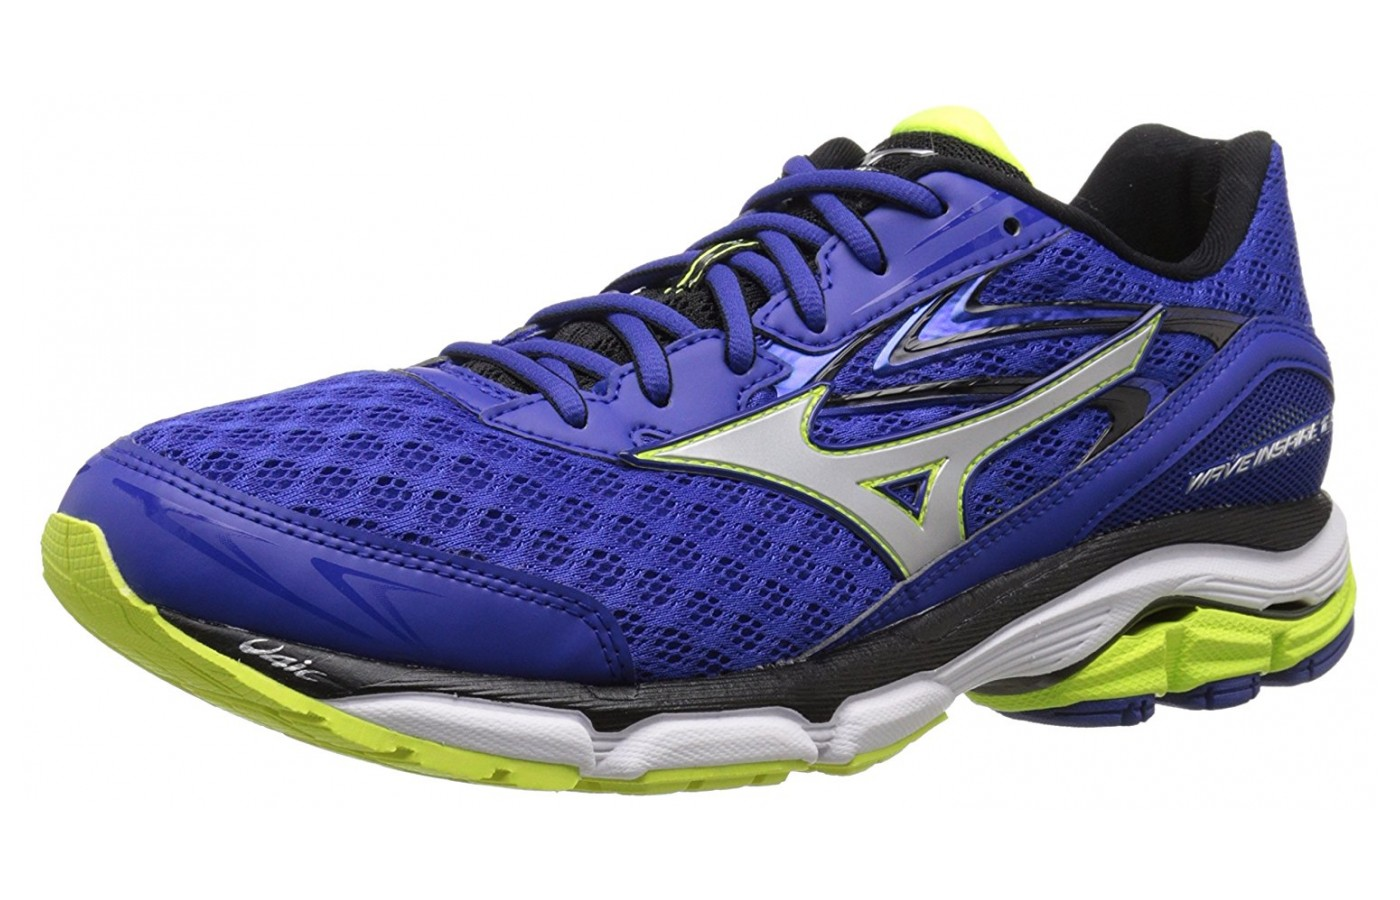 The Mizuno Wave Rider 12 utilizes an improved upper for better ventilation.